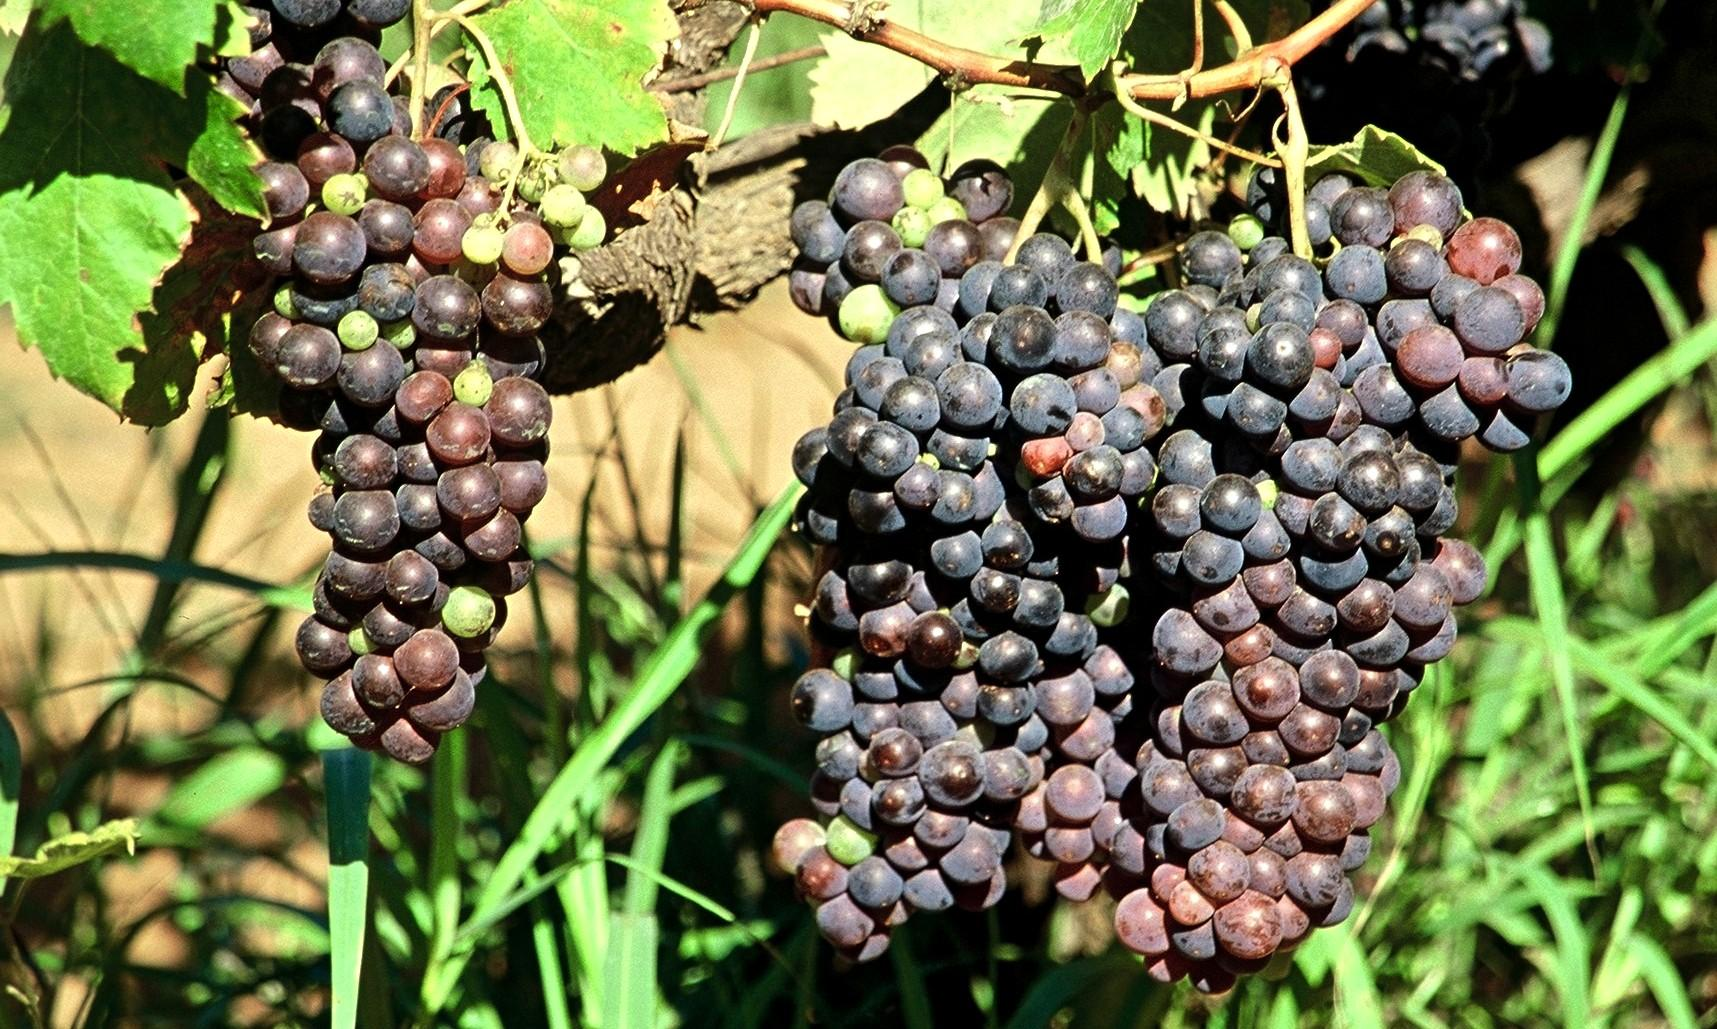 Tinta Negra Mole grapes in Madeira